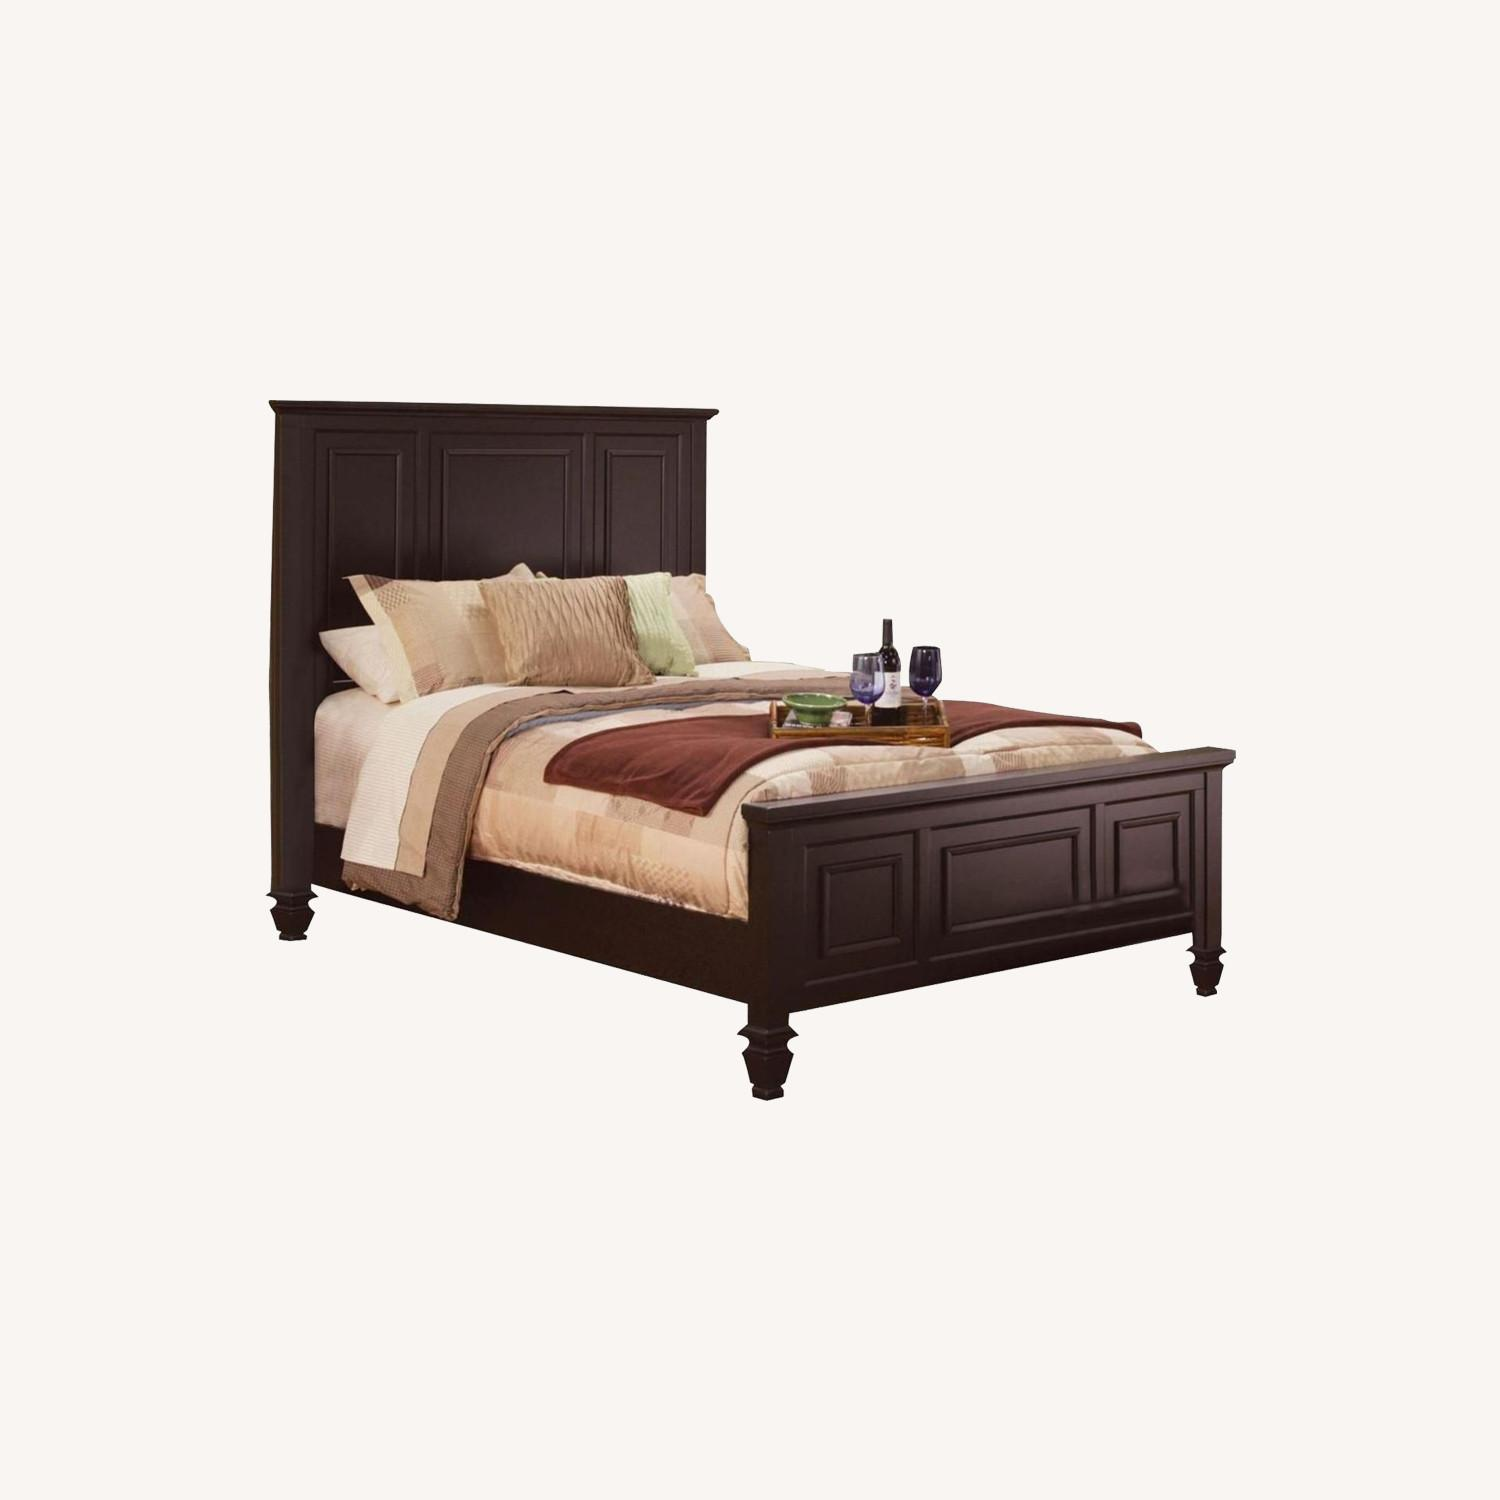 Versatile King Bed In Cappuccino Tropical Wood - image-3